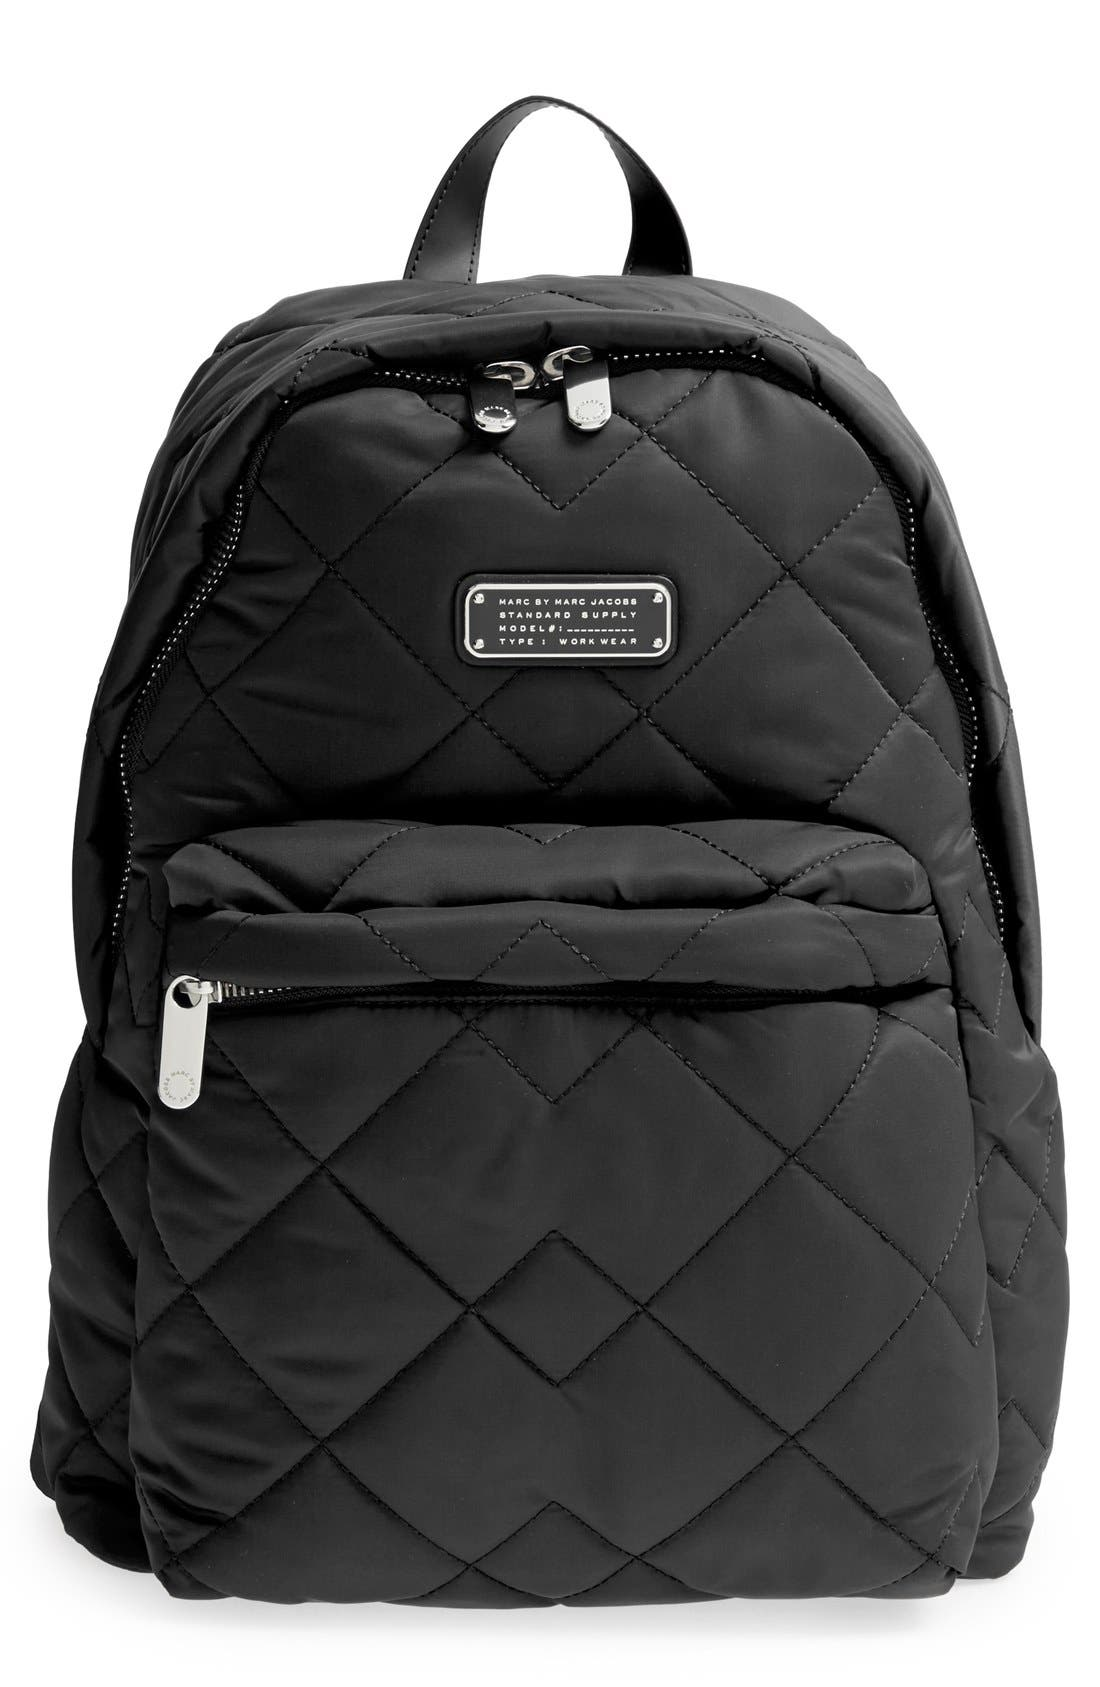 MARC BY MARC JACOBS 'Crosby' Quilted Nylon Backpack,                             Main thumbnail 1, color,                             001